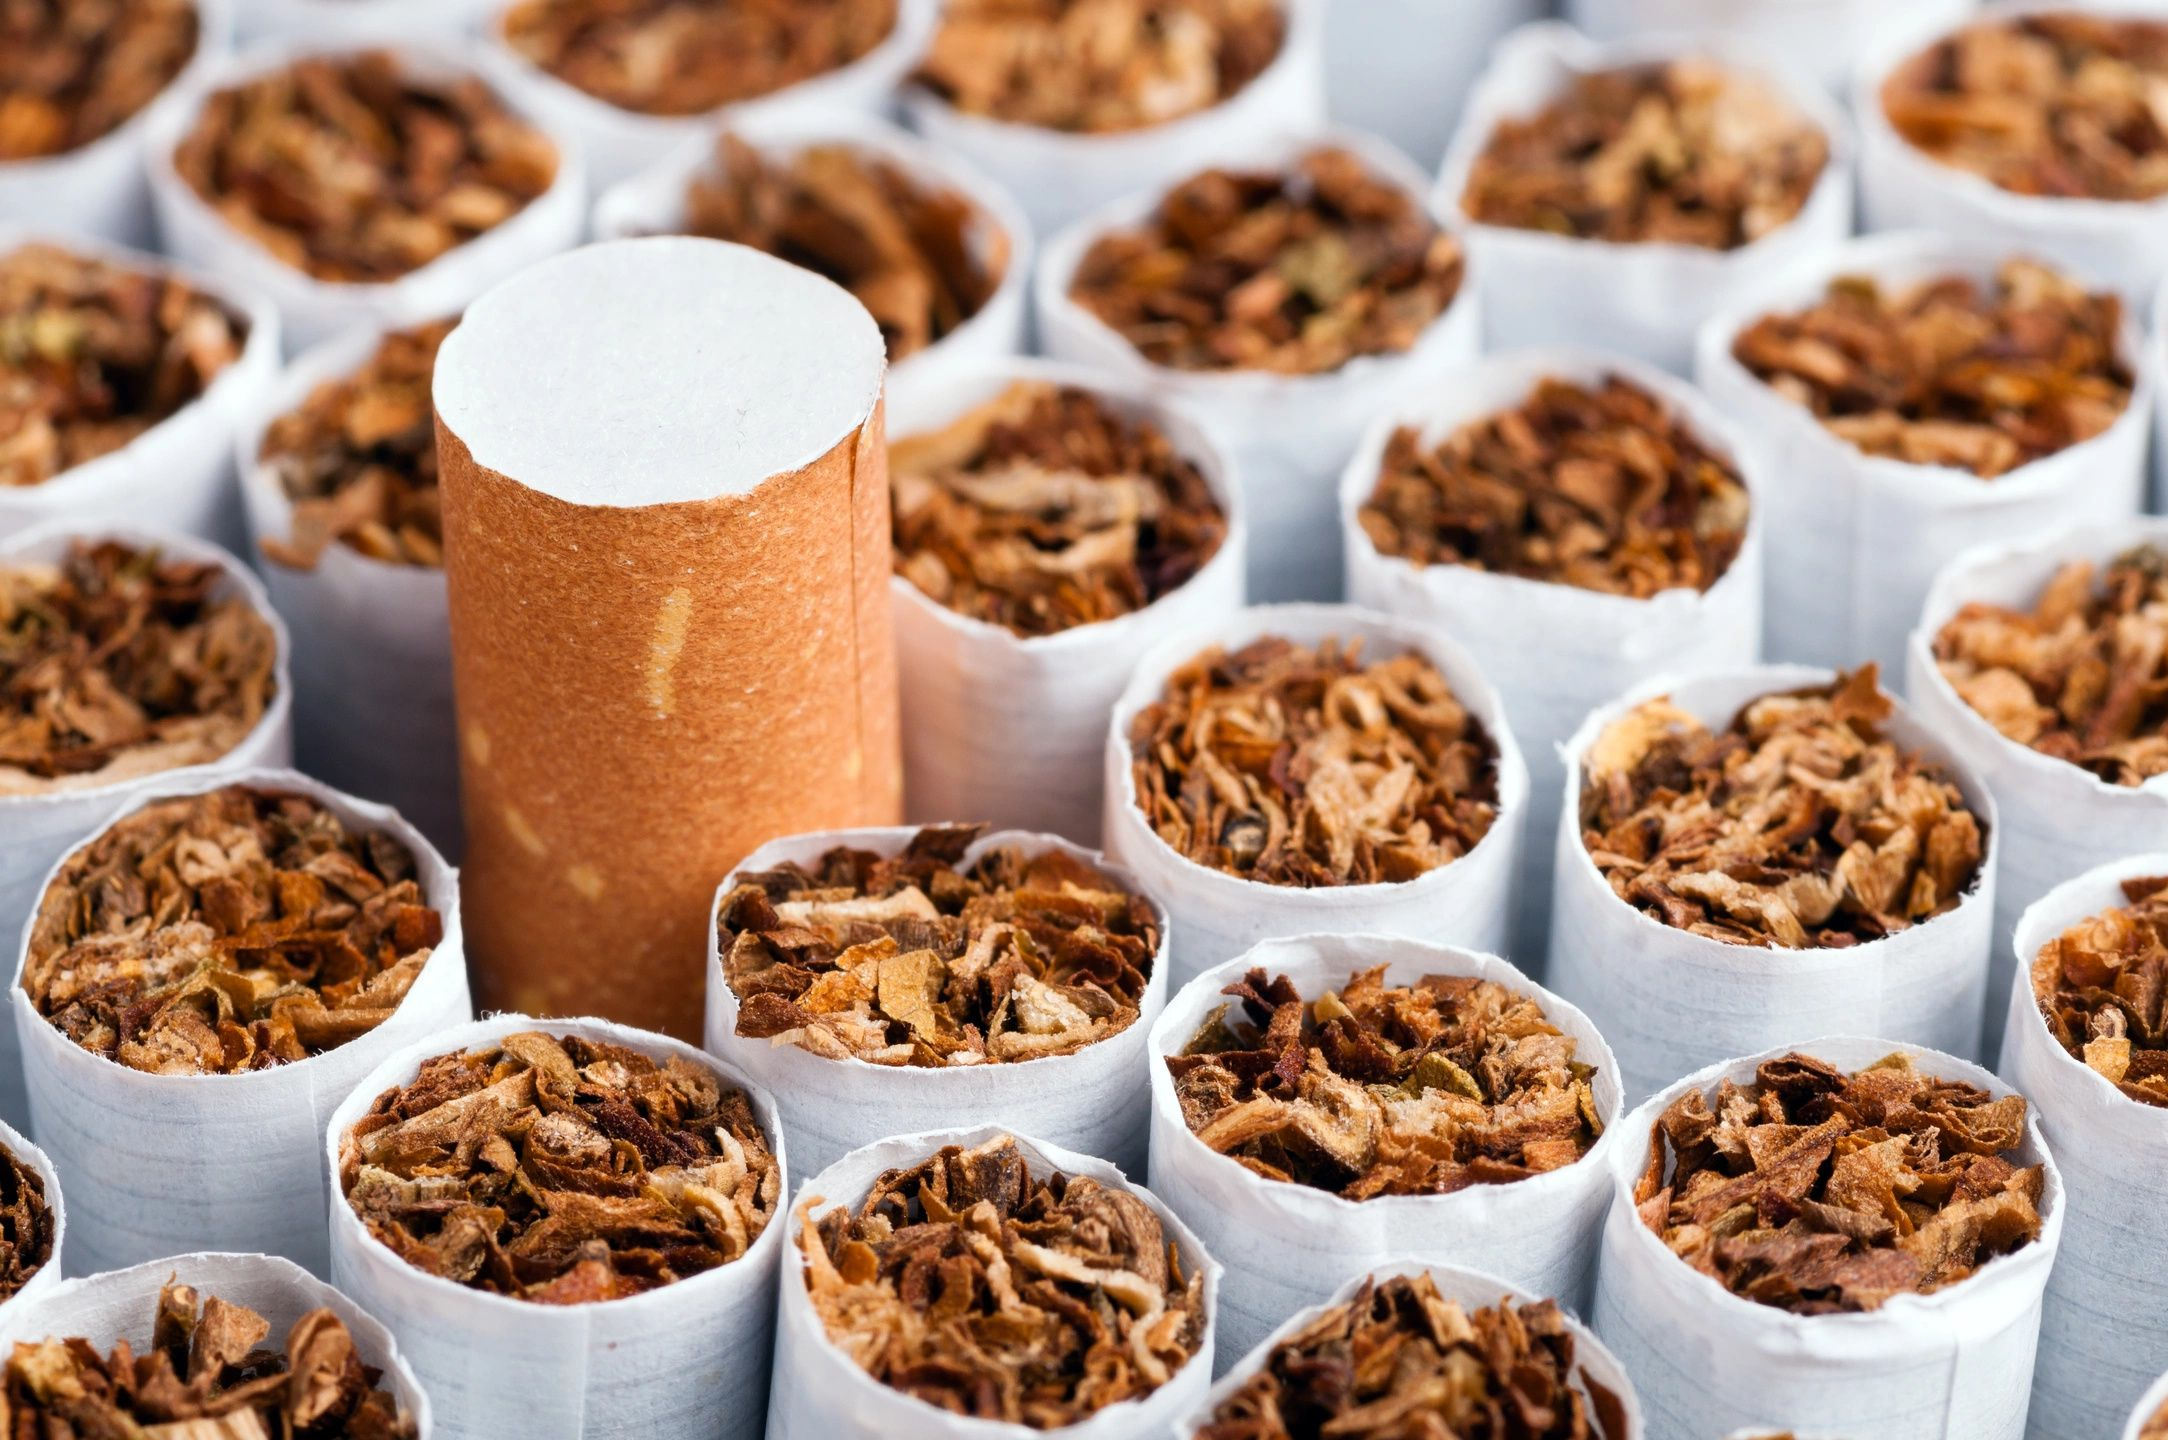 Altria/Philip Morris/Big Tobacco Investing in Marijuana